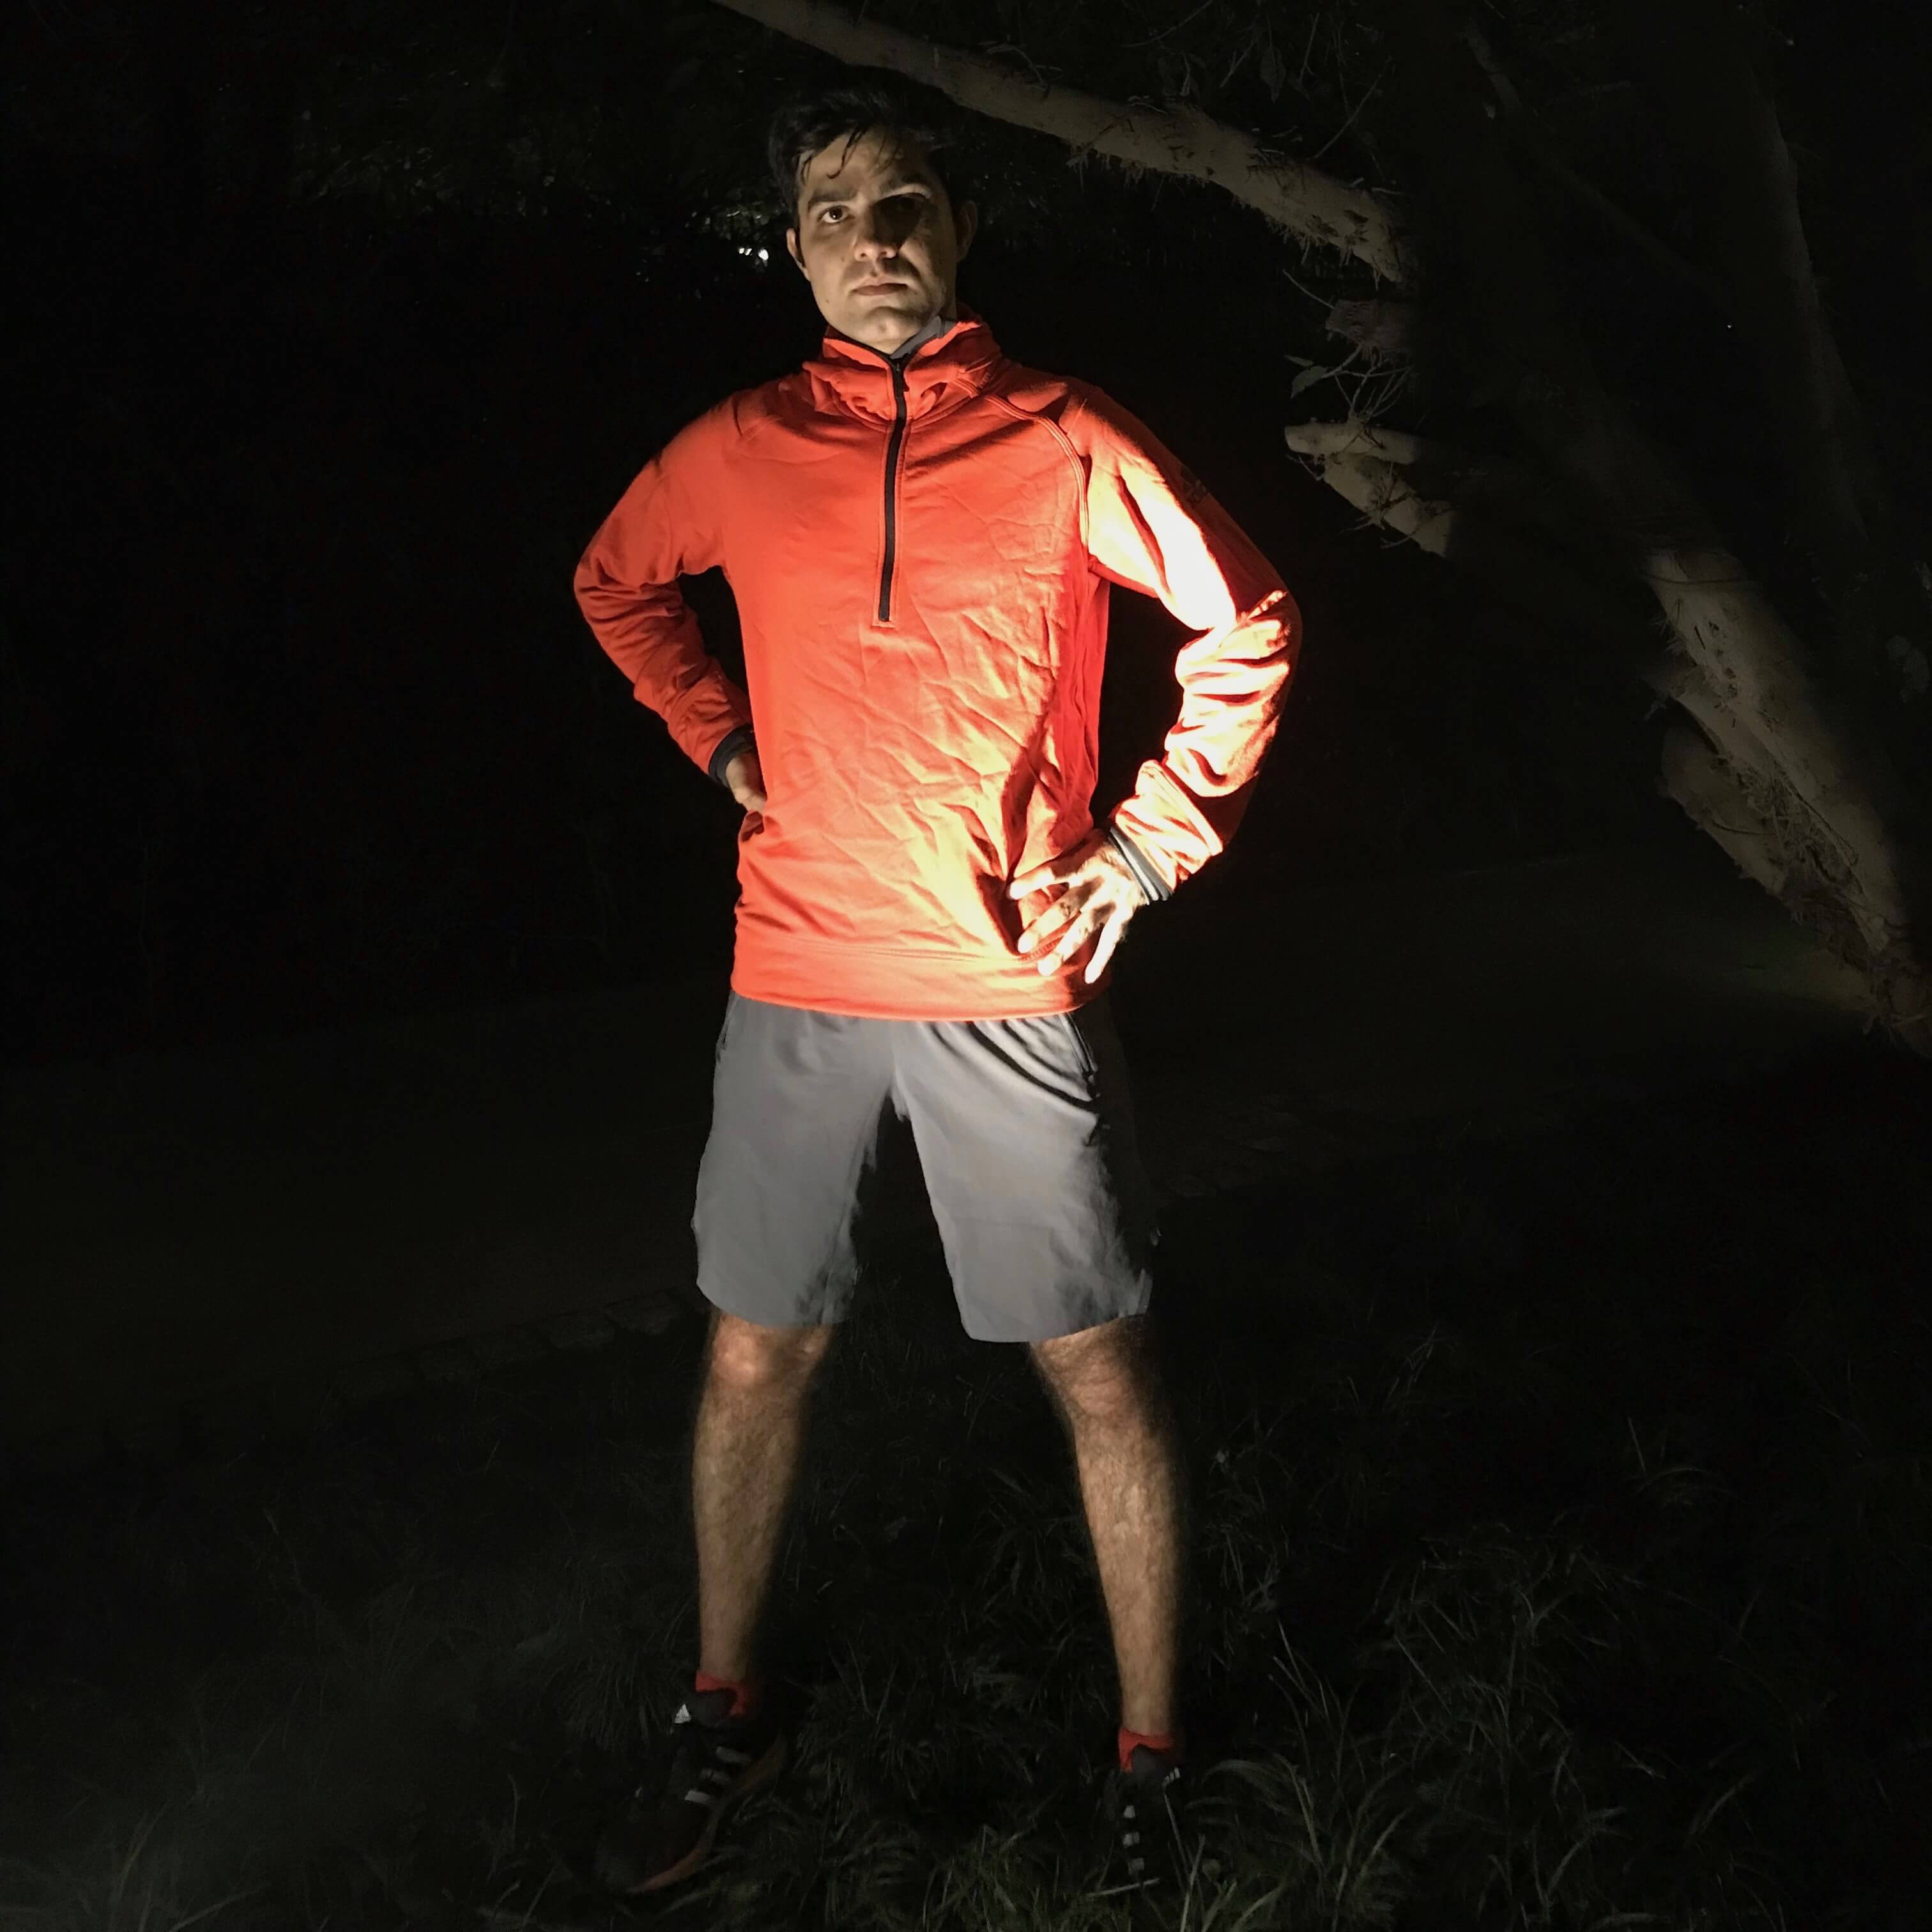 A man posing for the camera after his run at night